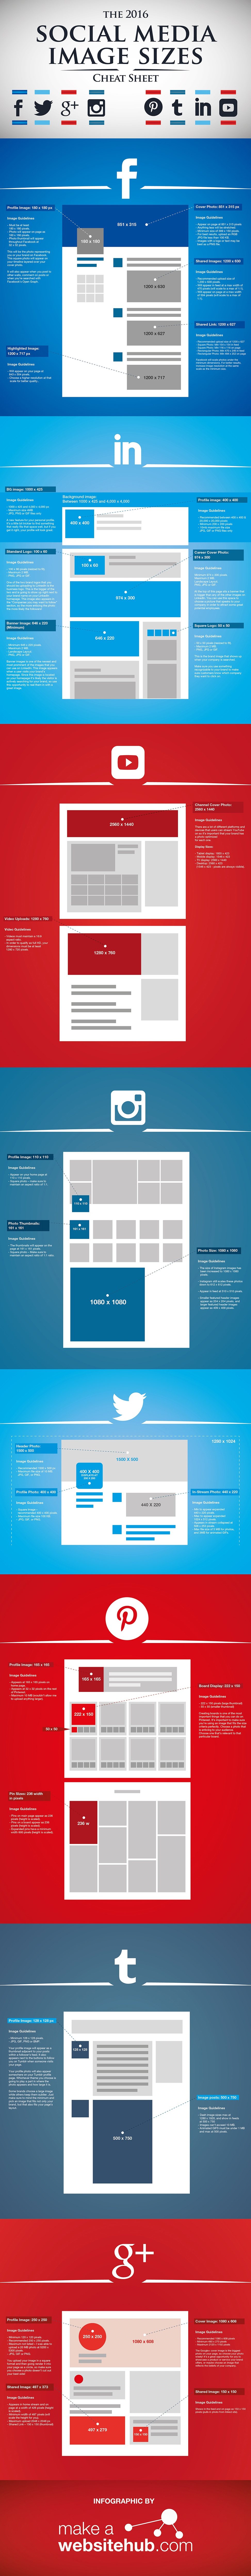 2016 Social Media Image Pixel Sizes Cheat Sheet